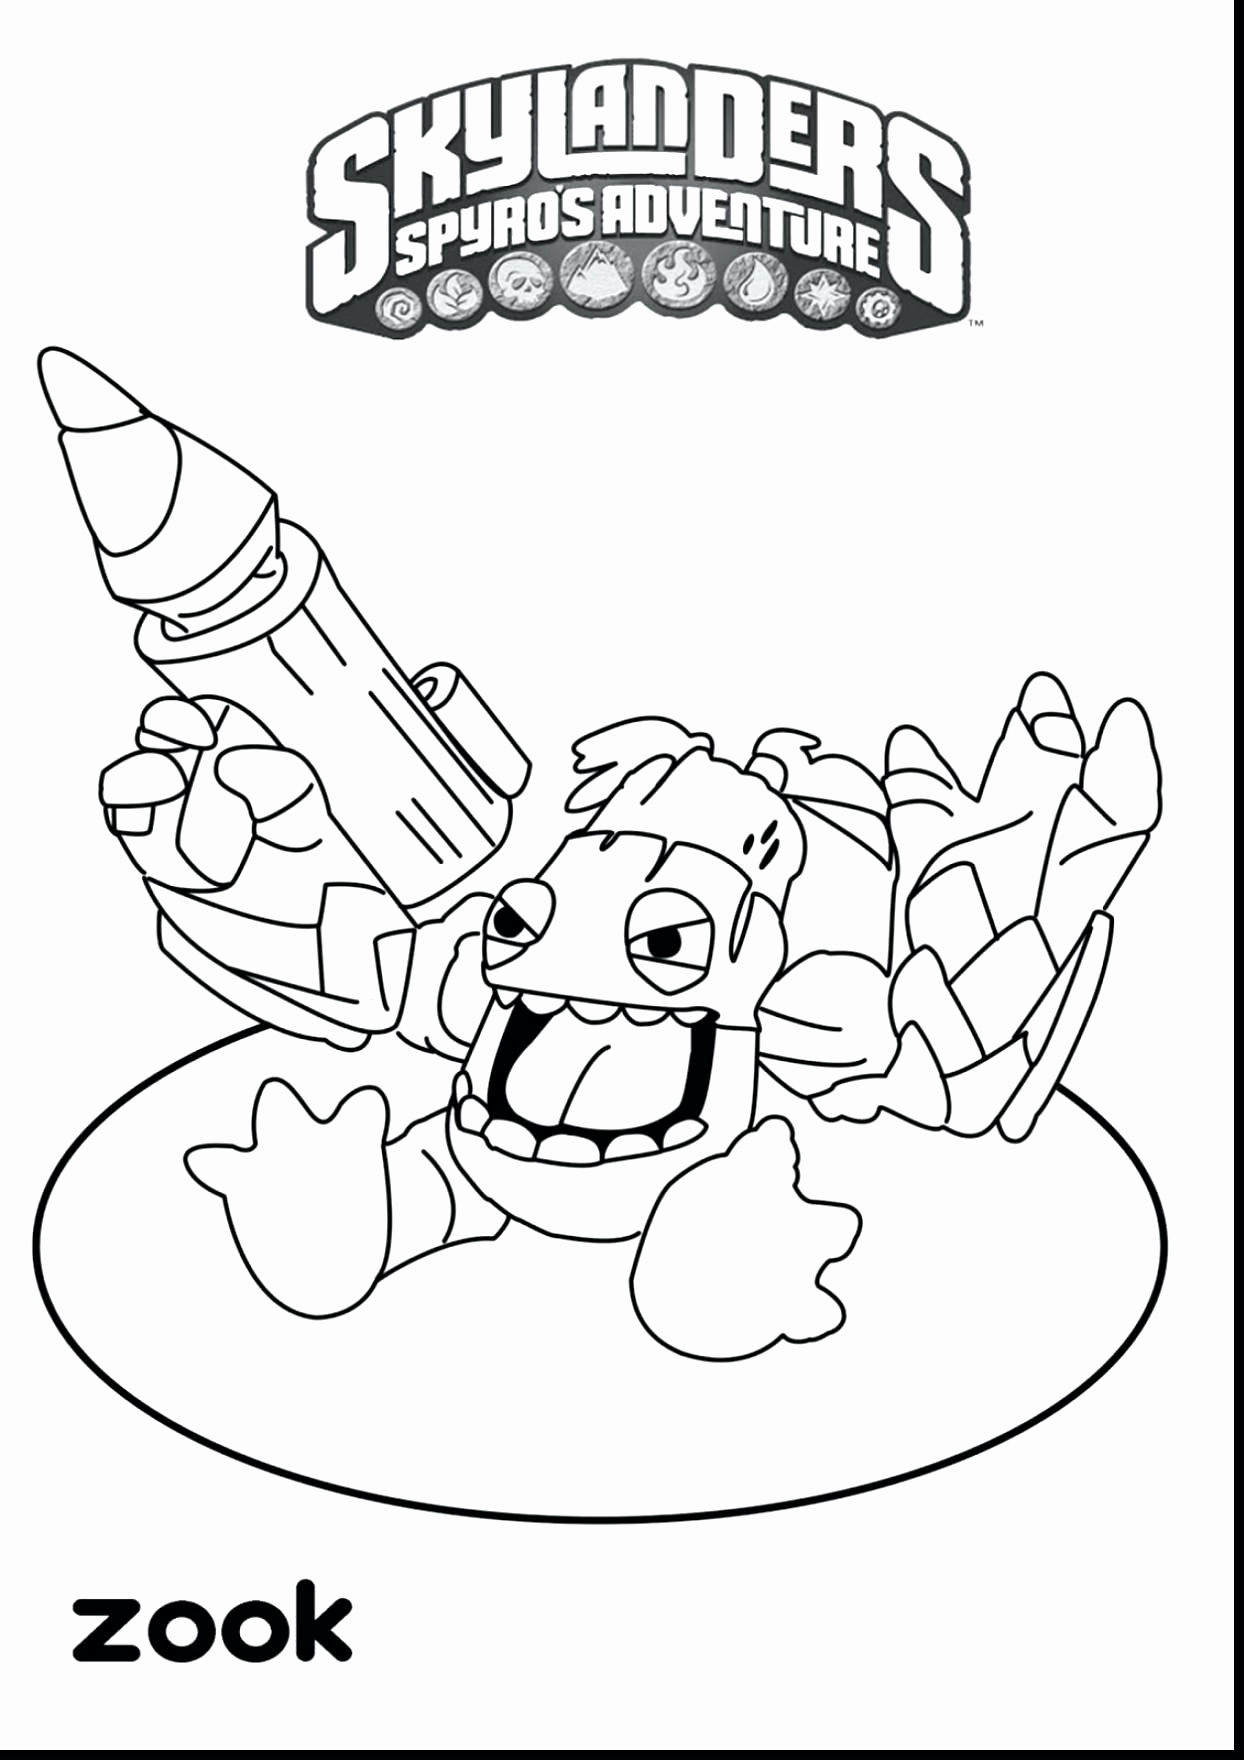 tanzania coloring pages Collection-February 1 2018 Witch Coloring Pages 15-p